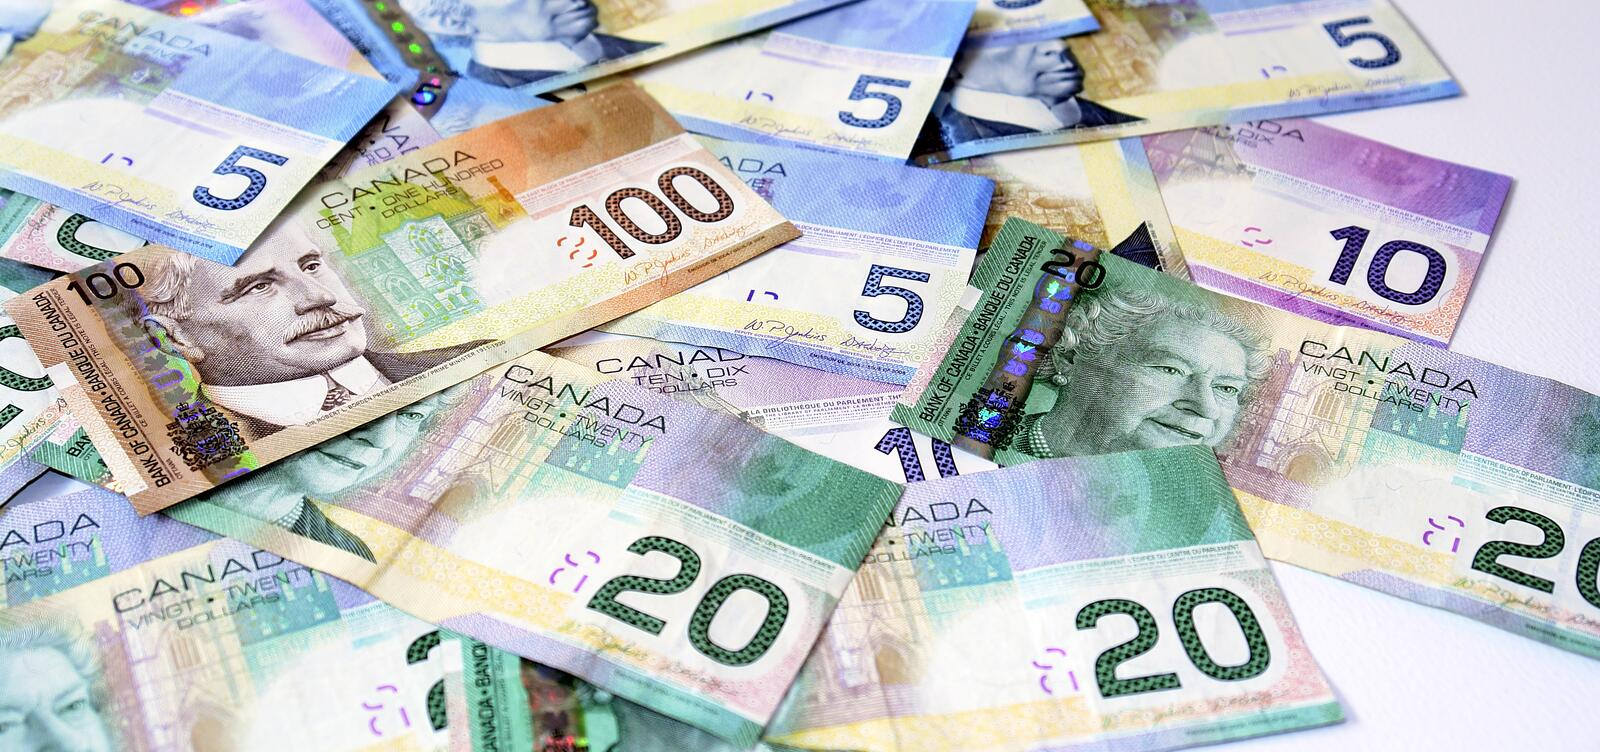 Canadian Money Currency royalty free stock photos